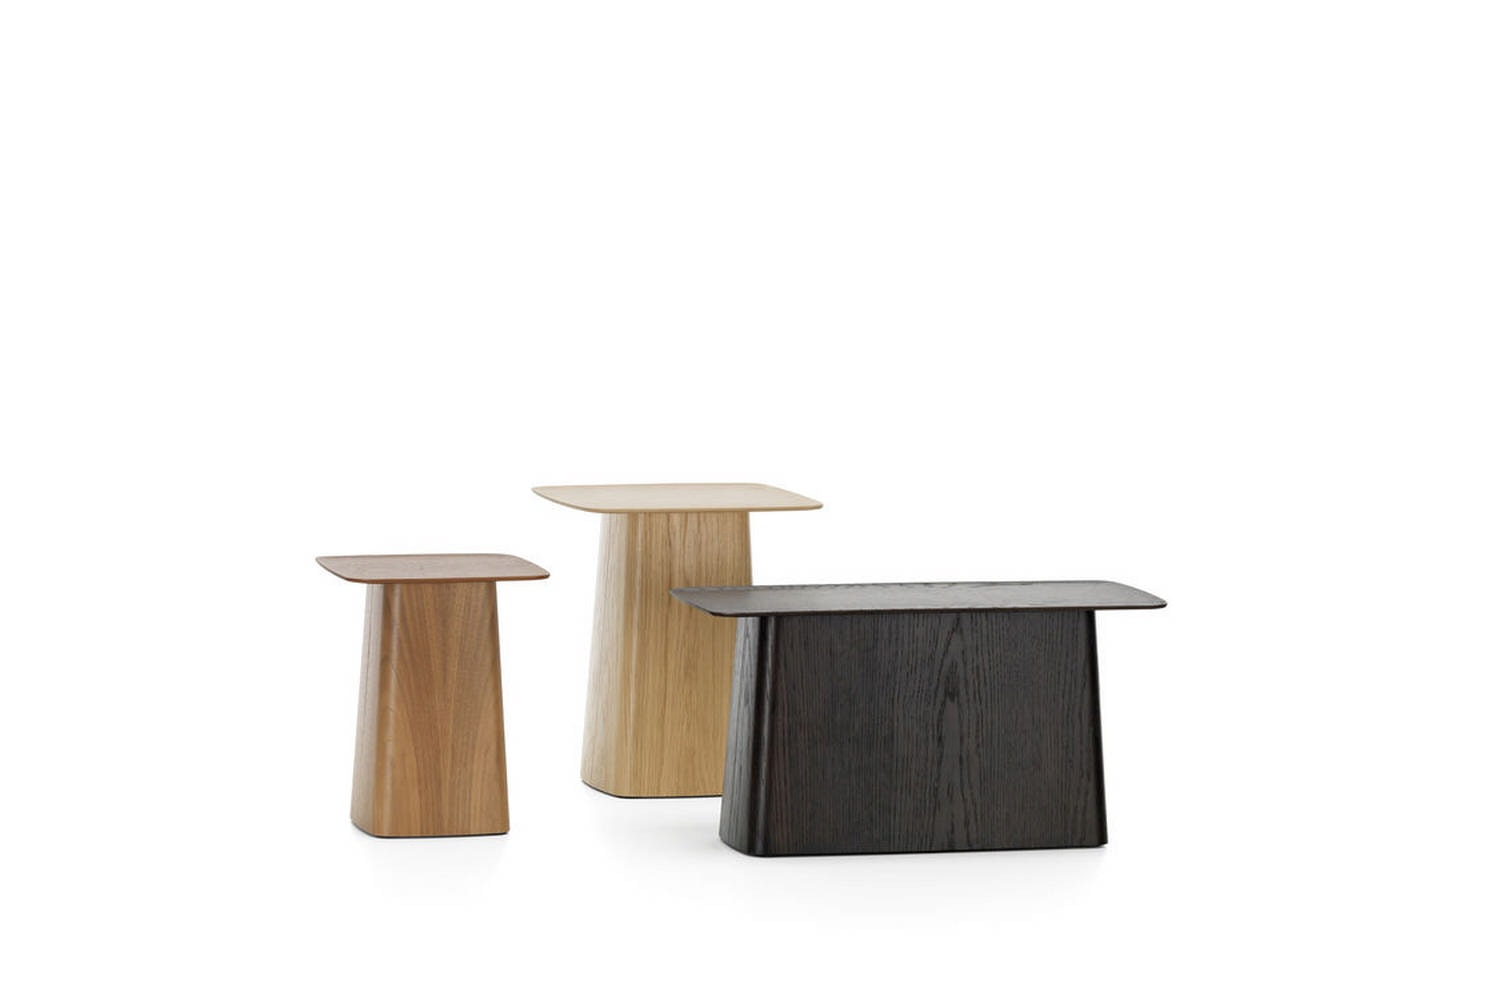 Wooden Side Tables by Ronan & Erwan Bouroullec for Vitra